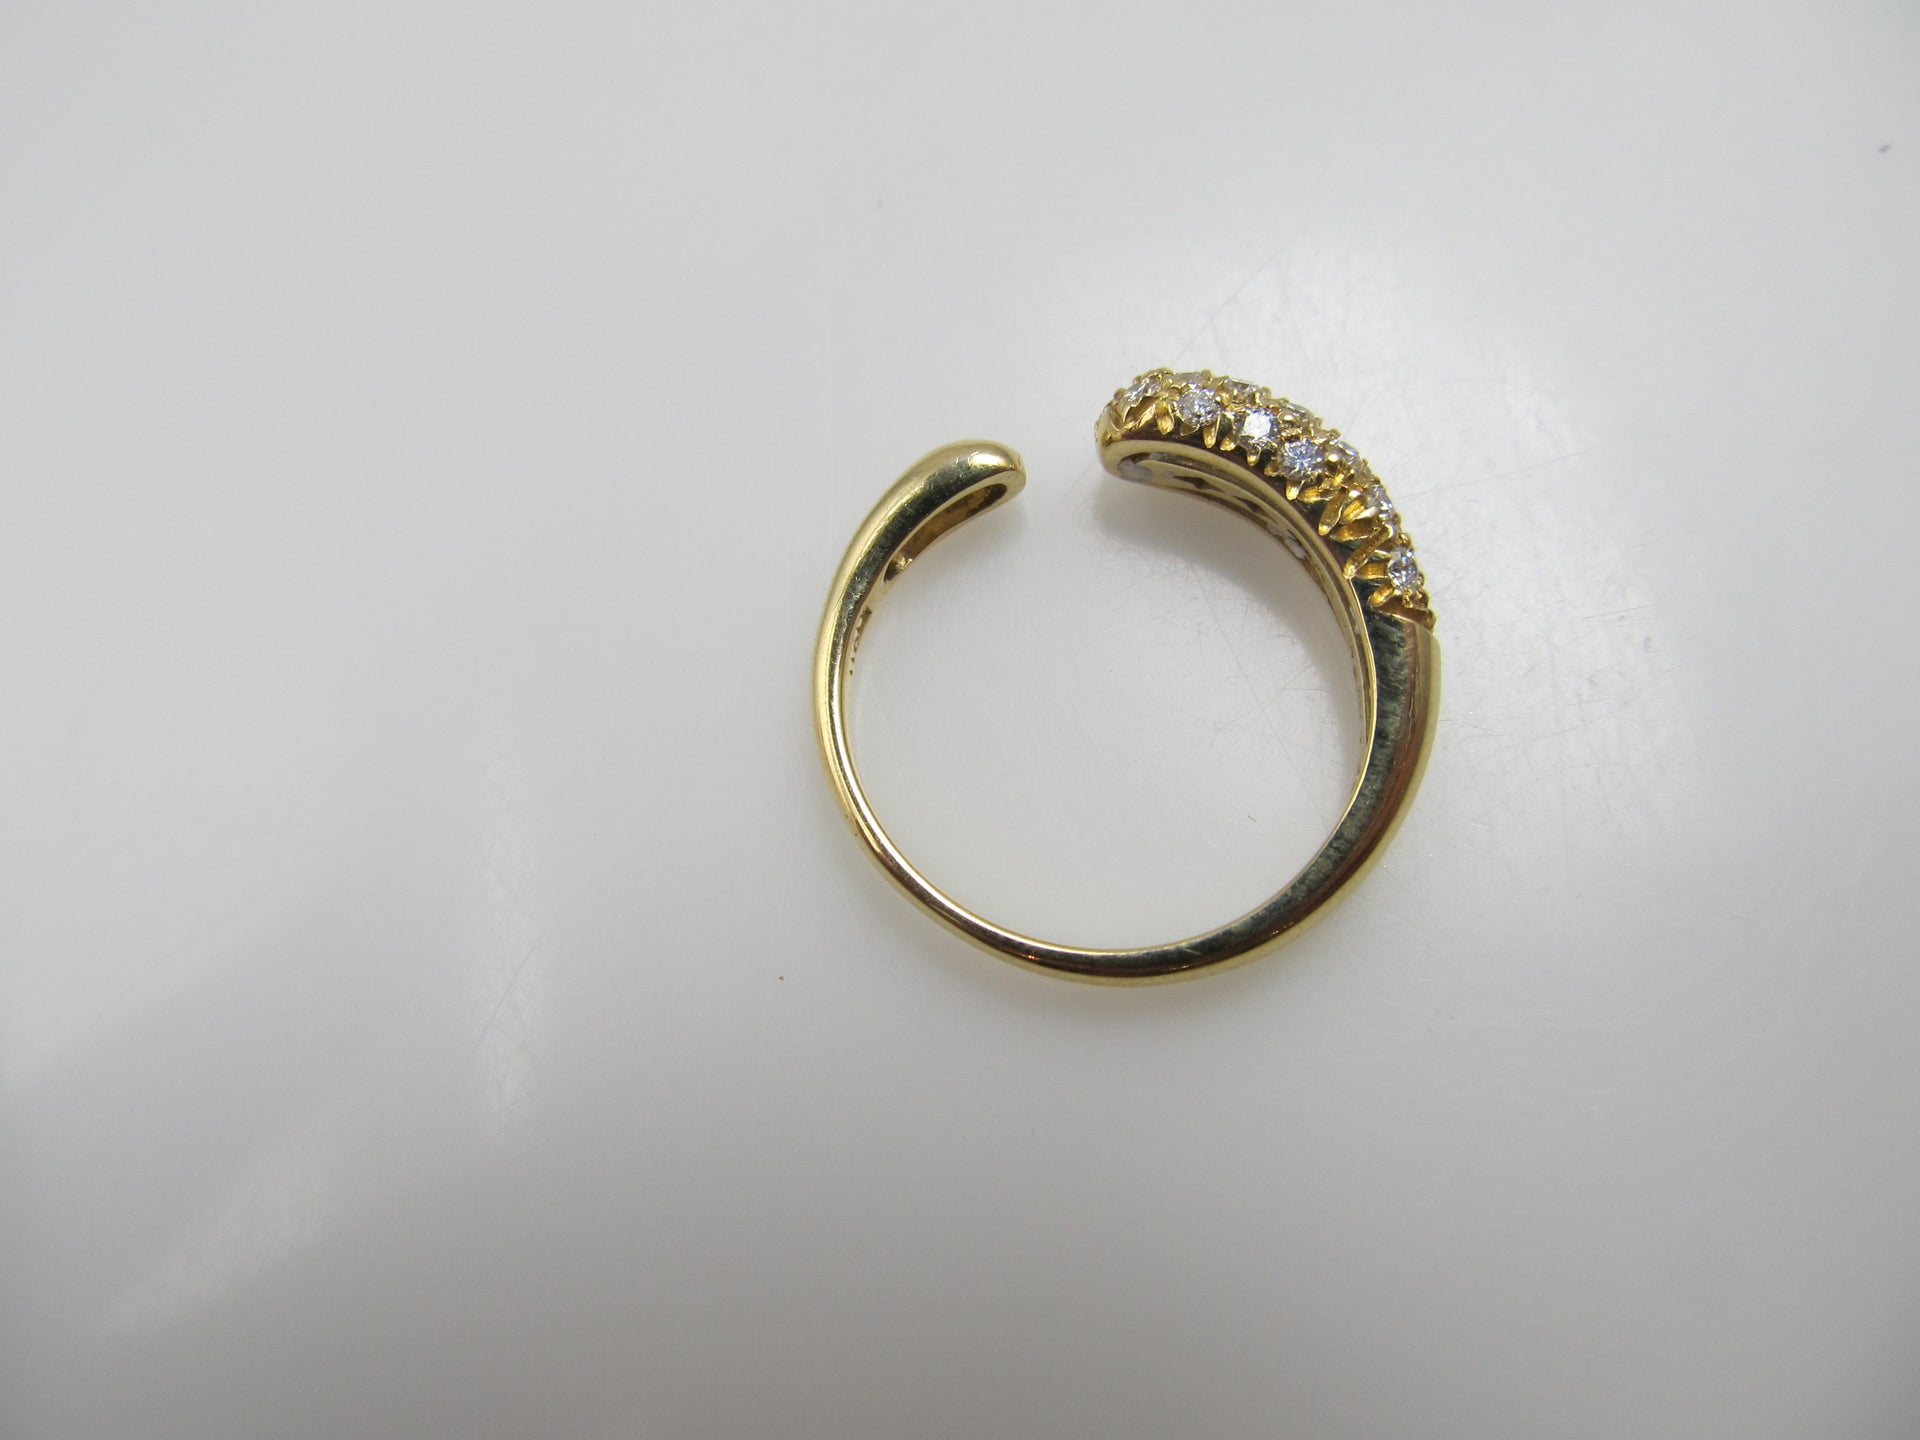 18k yellow gold ring with .40cts in diamonds by Faraone Mennella, retail $2800